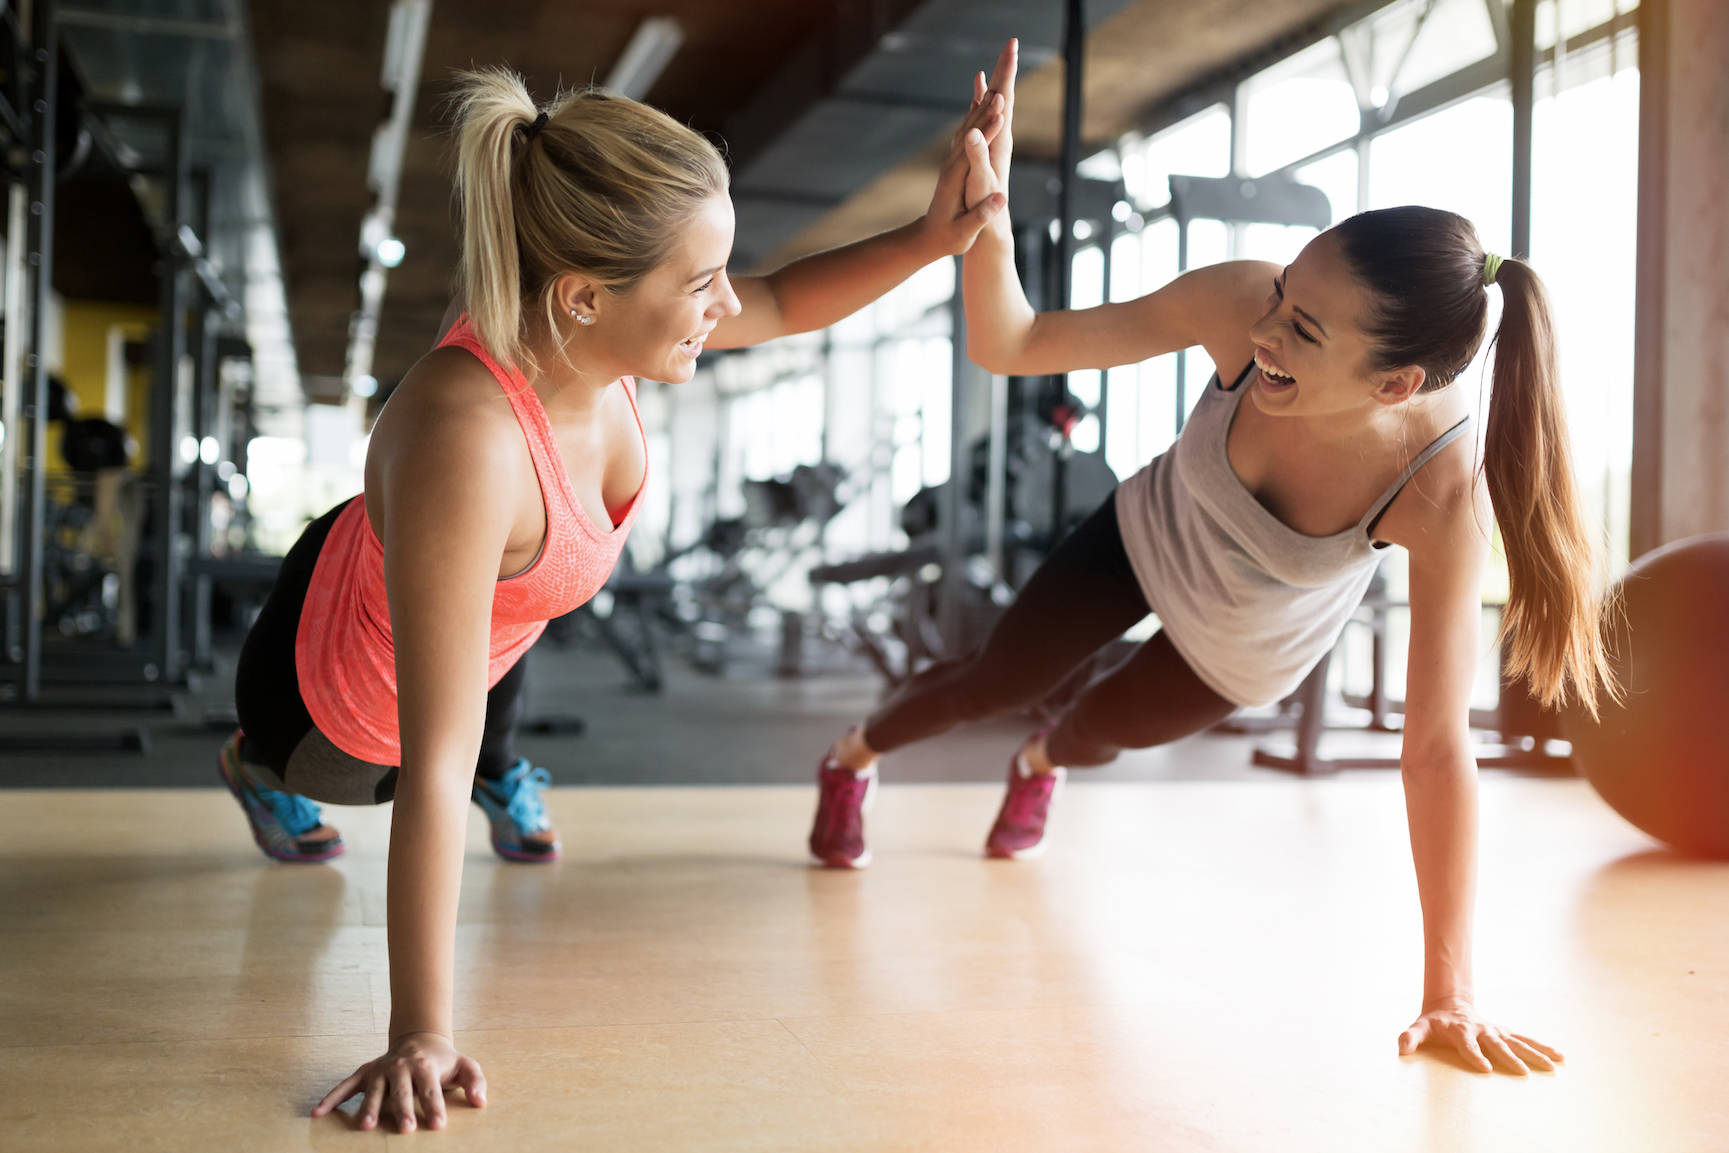 Researchers at the Stanford University School of Medicine are reporting that people born with a high genetic risk for heart disease can keep their heart healthy by staying in shape.